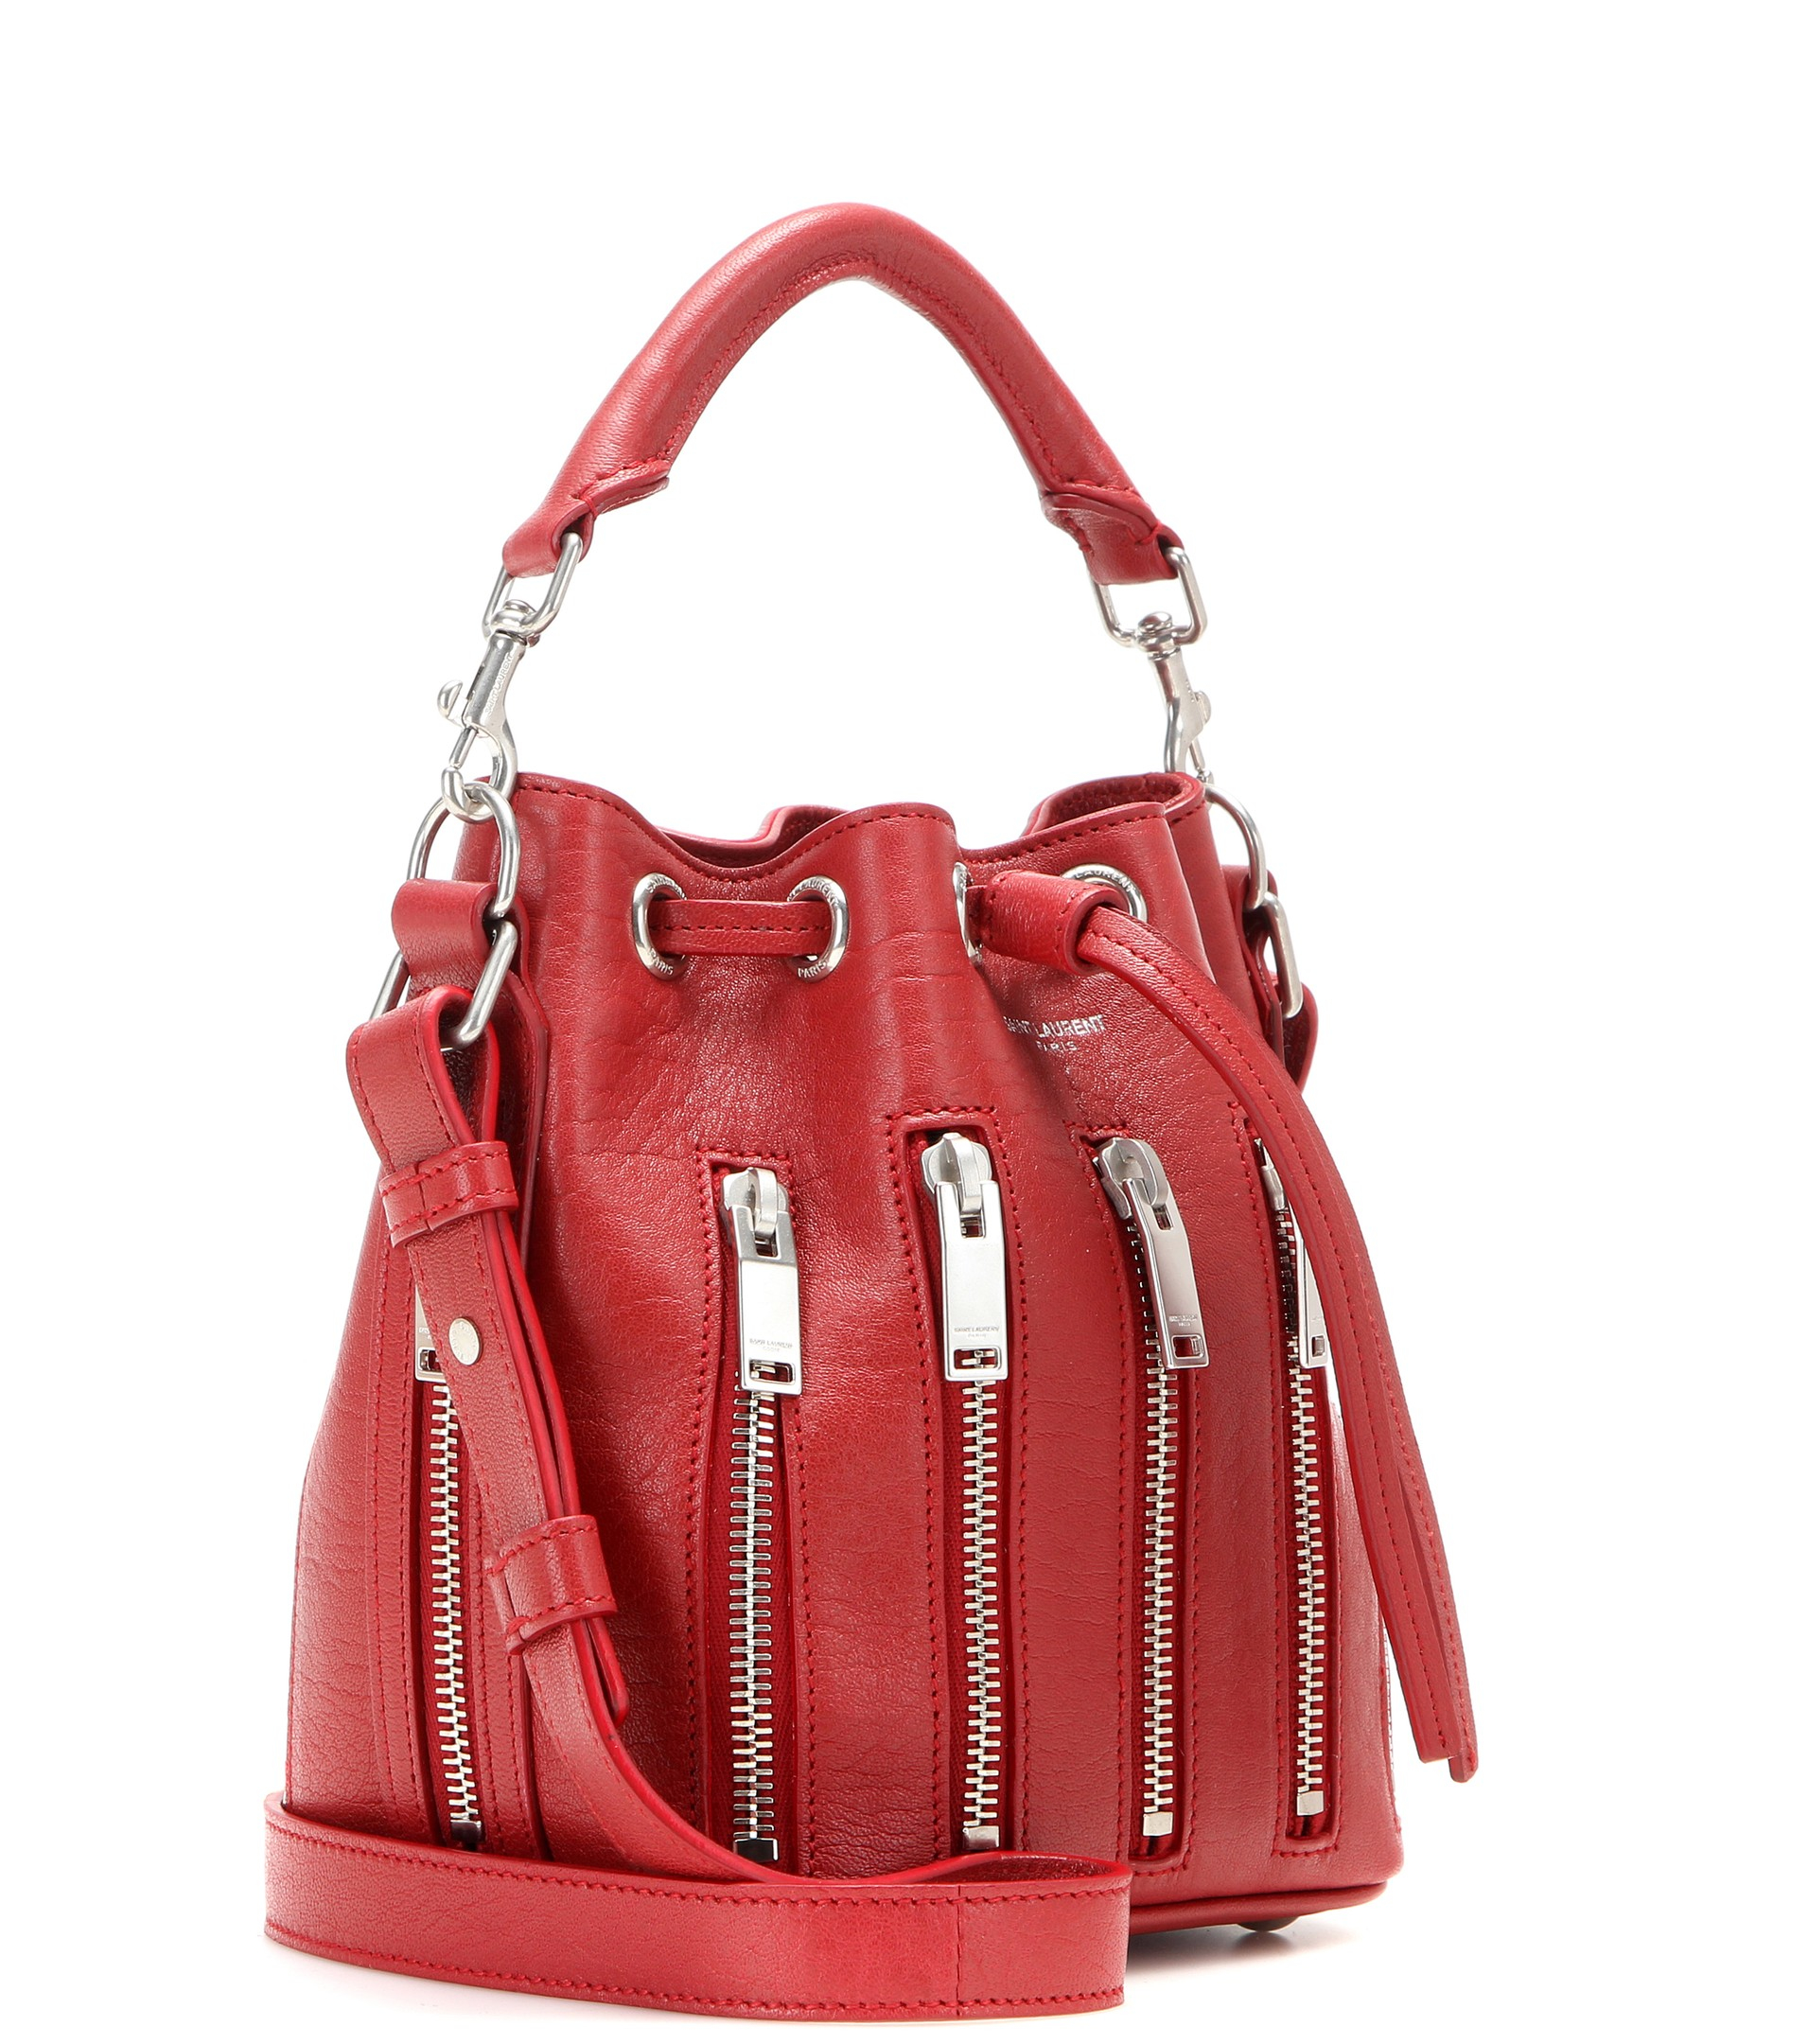 6eb20ba8ea31 ... Red ysl red patent leather clutch - monogram small star studded bucket  bag